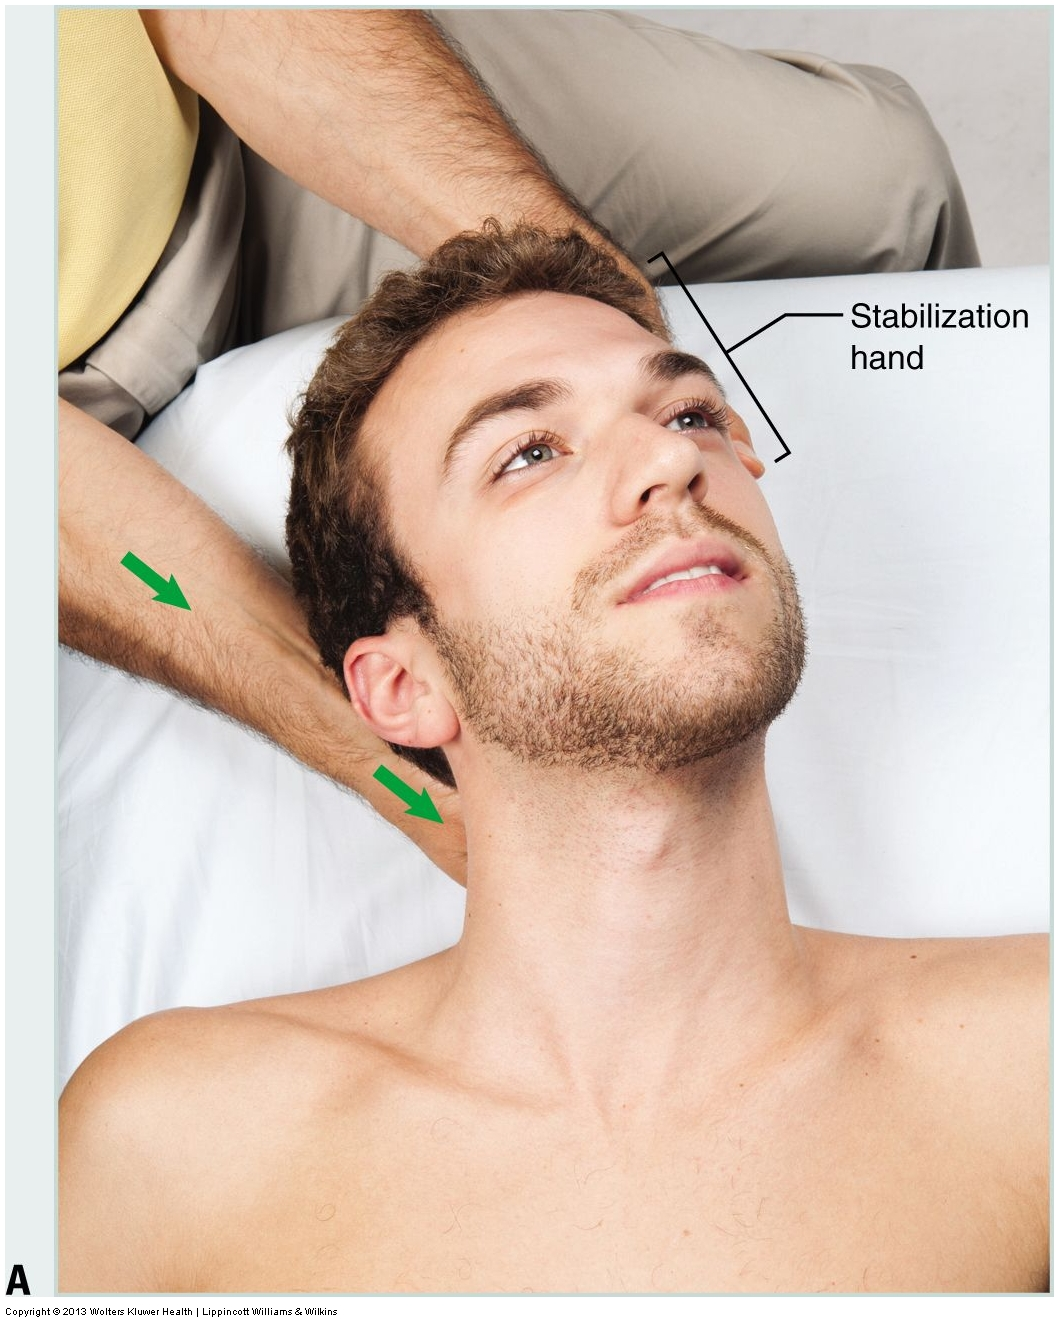 Permission Joseph E. Muscolino. Advanced Treatment Techniques for the Manual Therapist: Neck (2013).